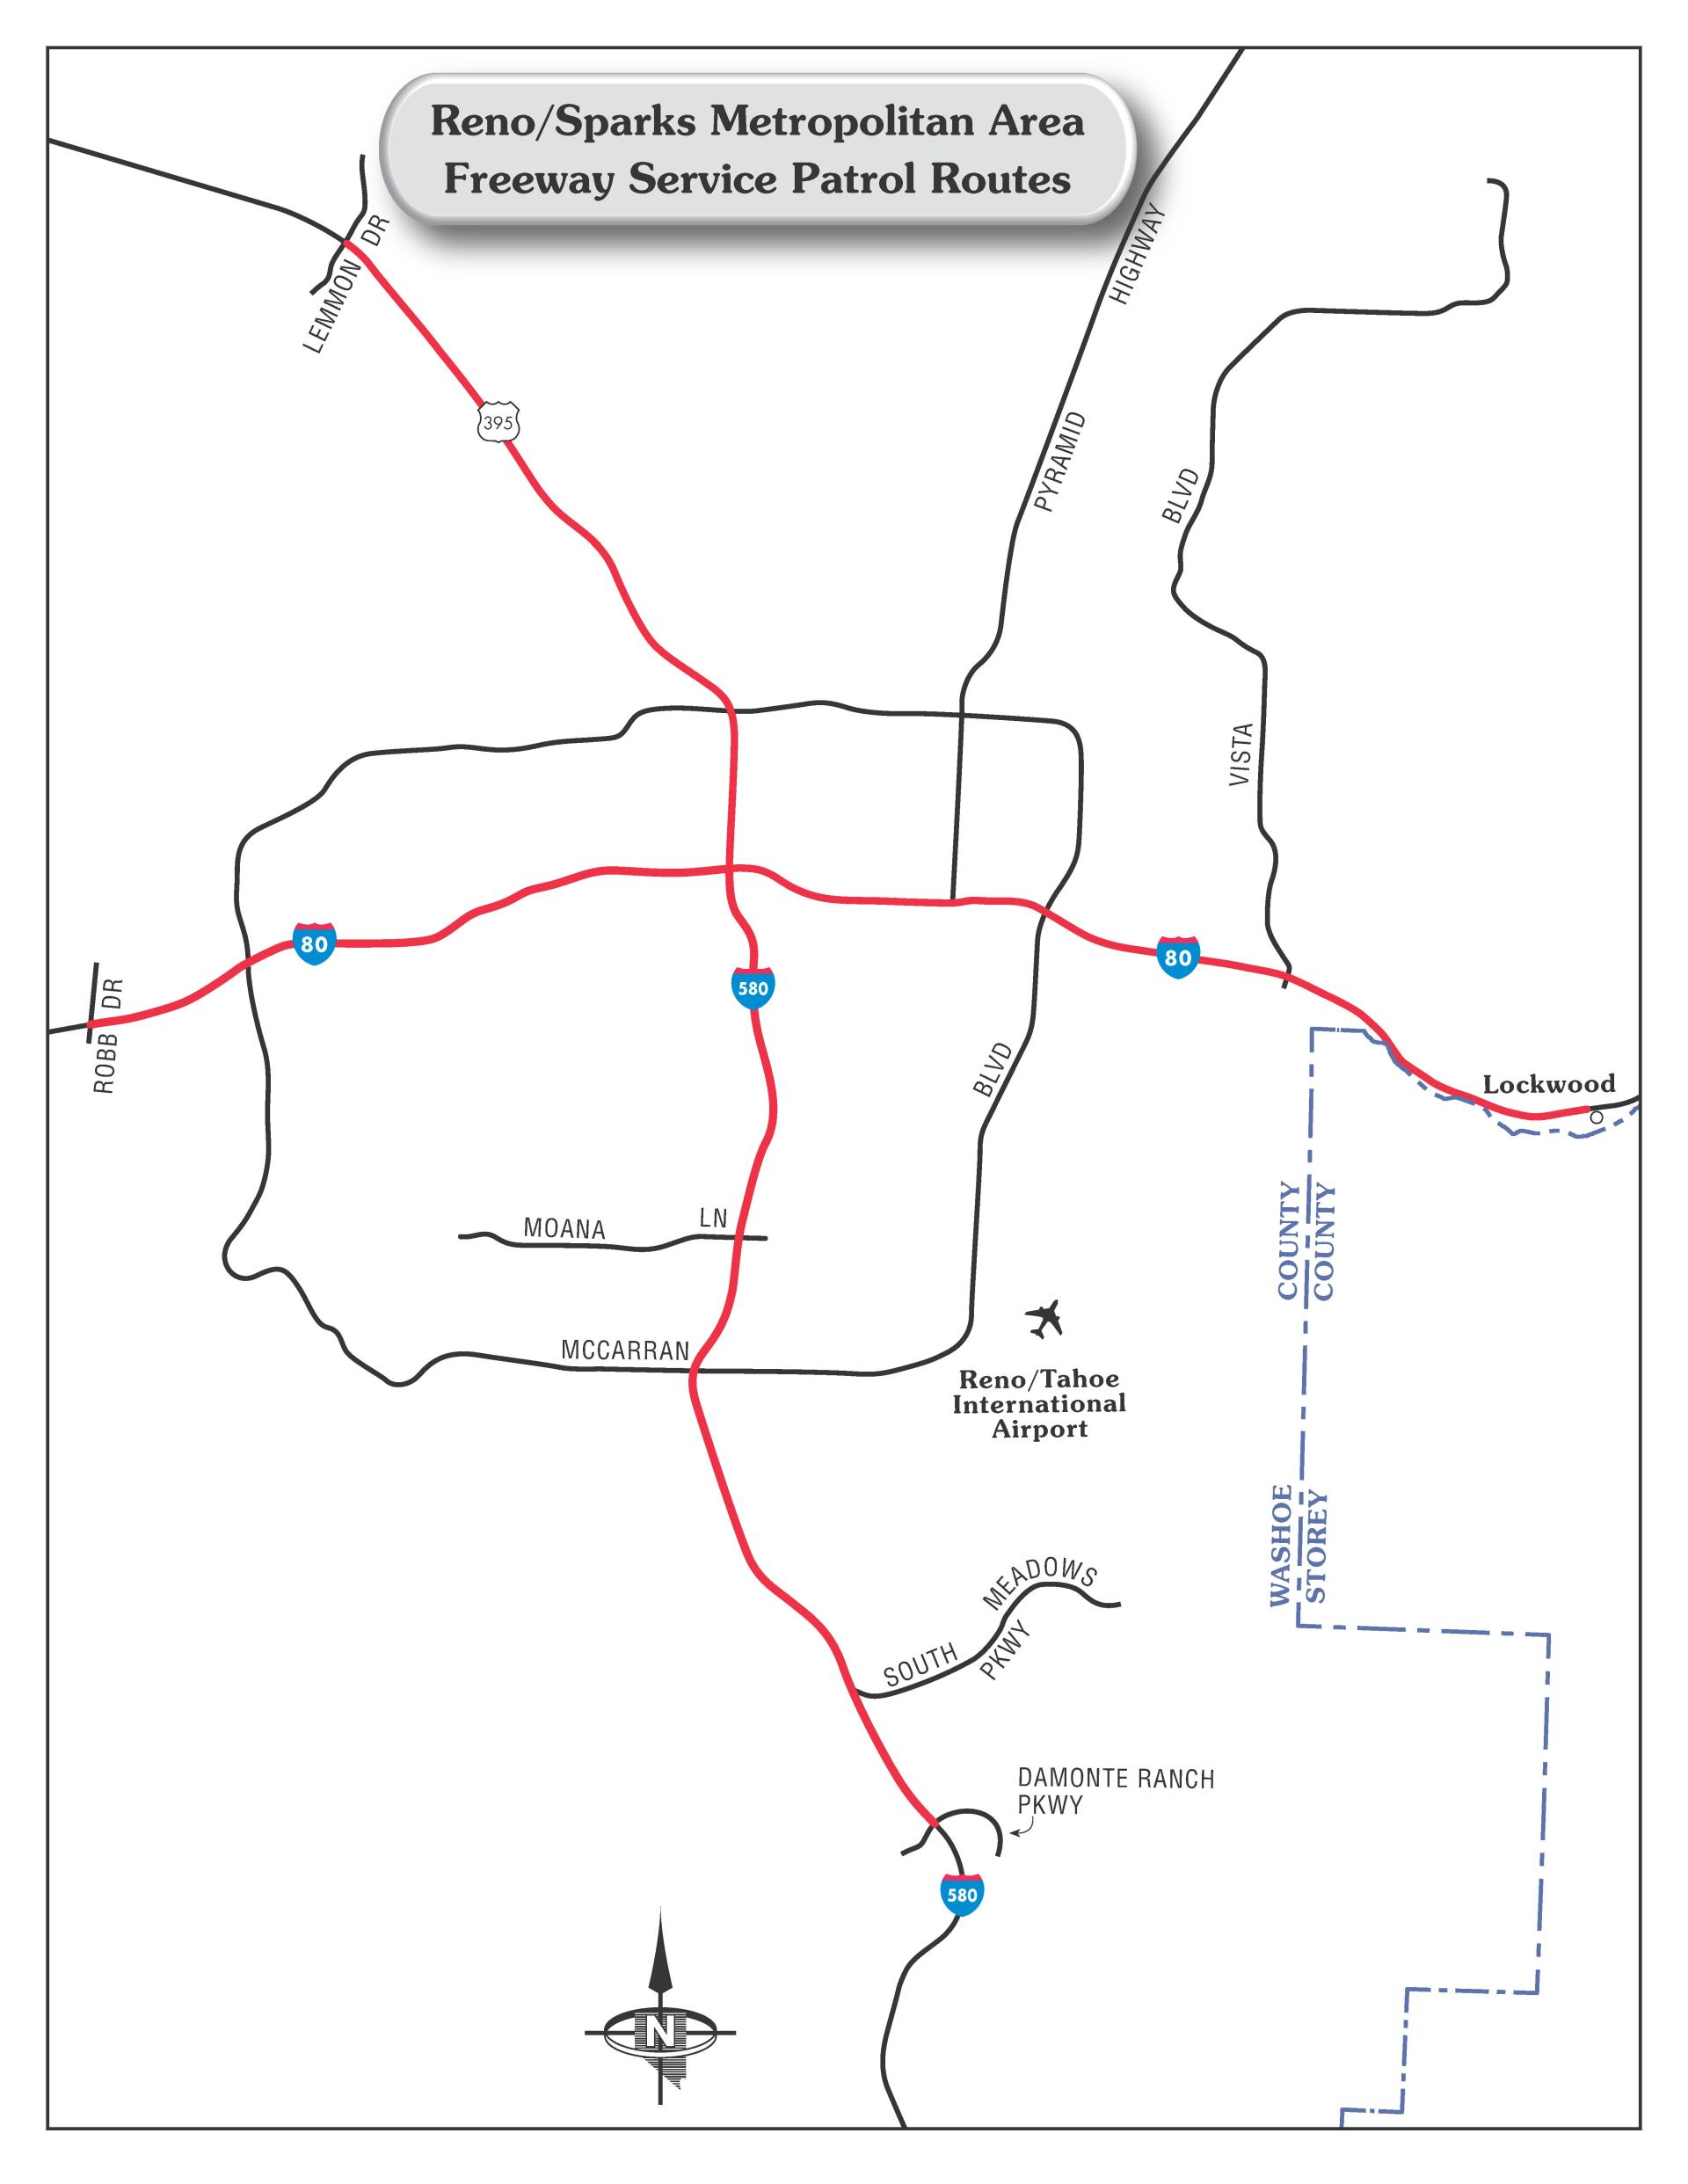 A map of the Freeway Service Patrol route in Reno